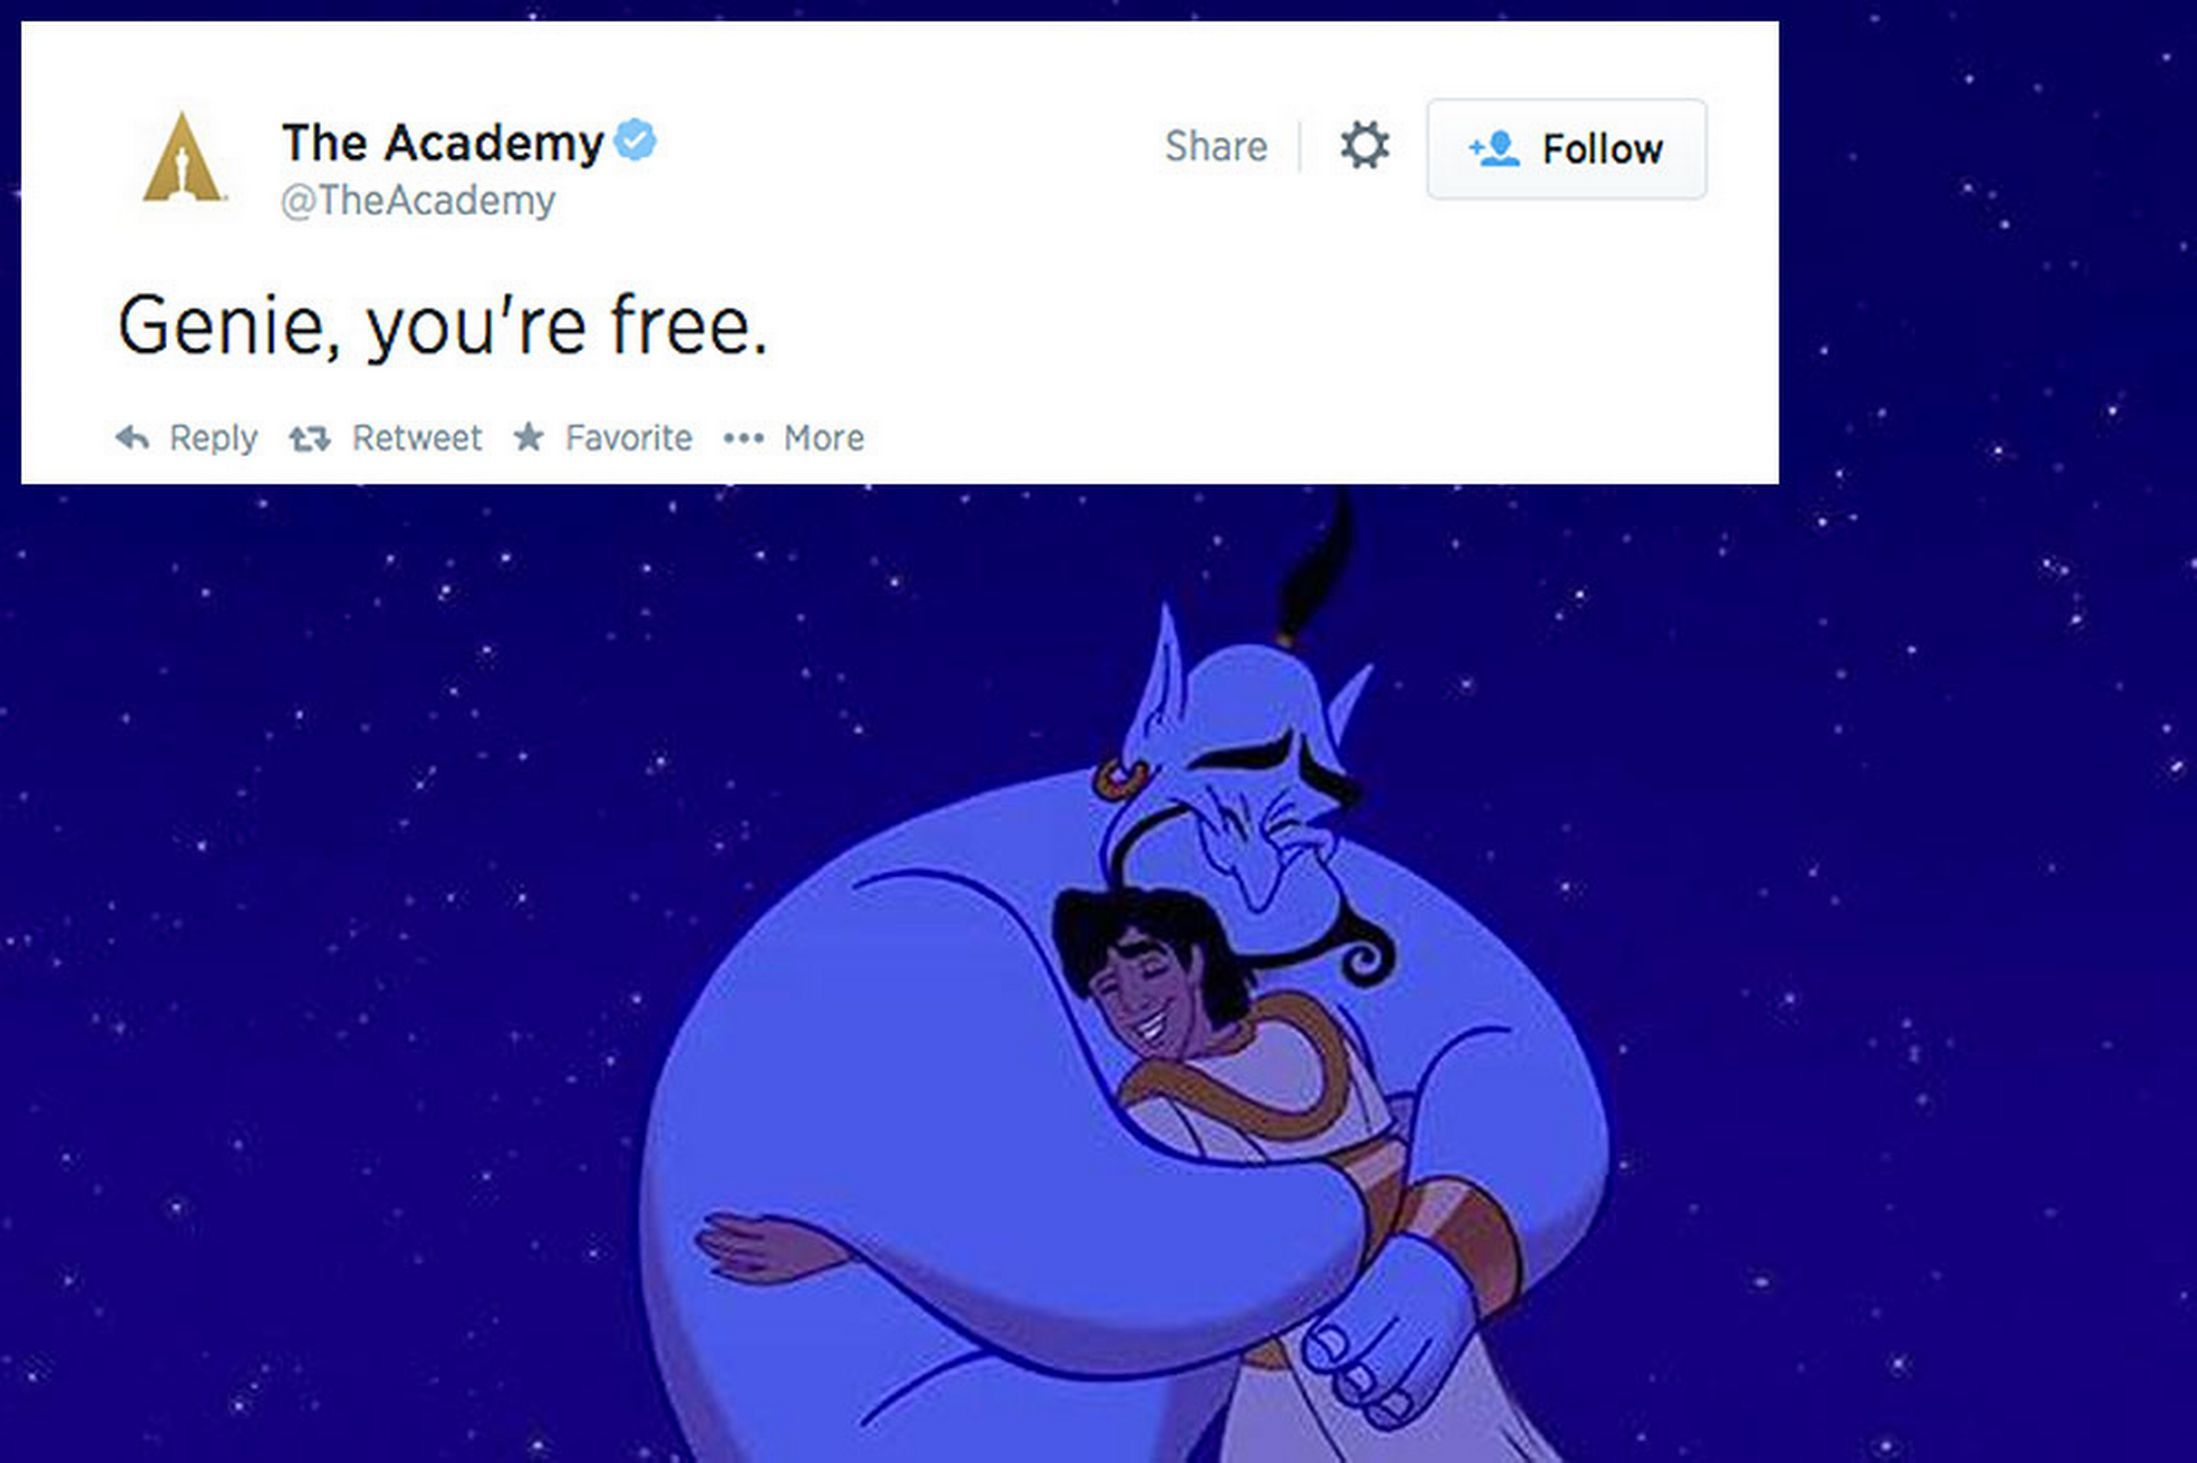 Robin Williams Dead The Academy Issue Heartbreaking Tribute Genie You Re Free Robin Williams Death Robin Williams Genie Robin Williams